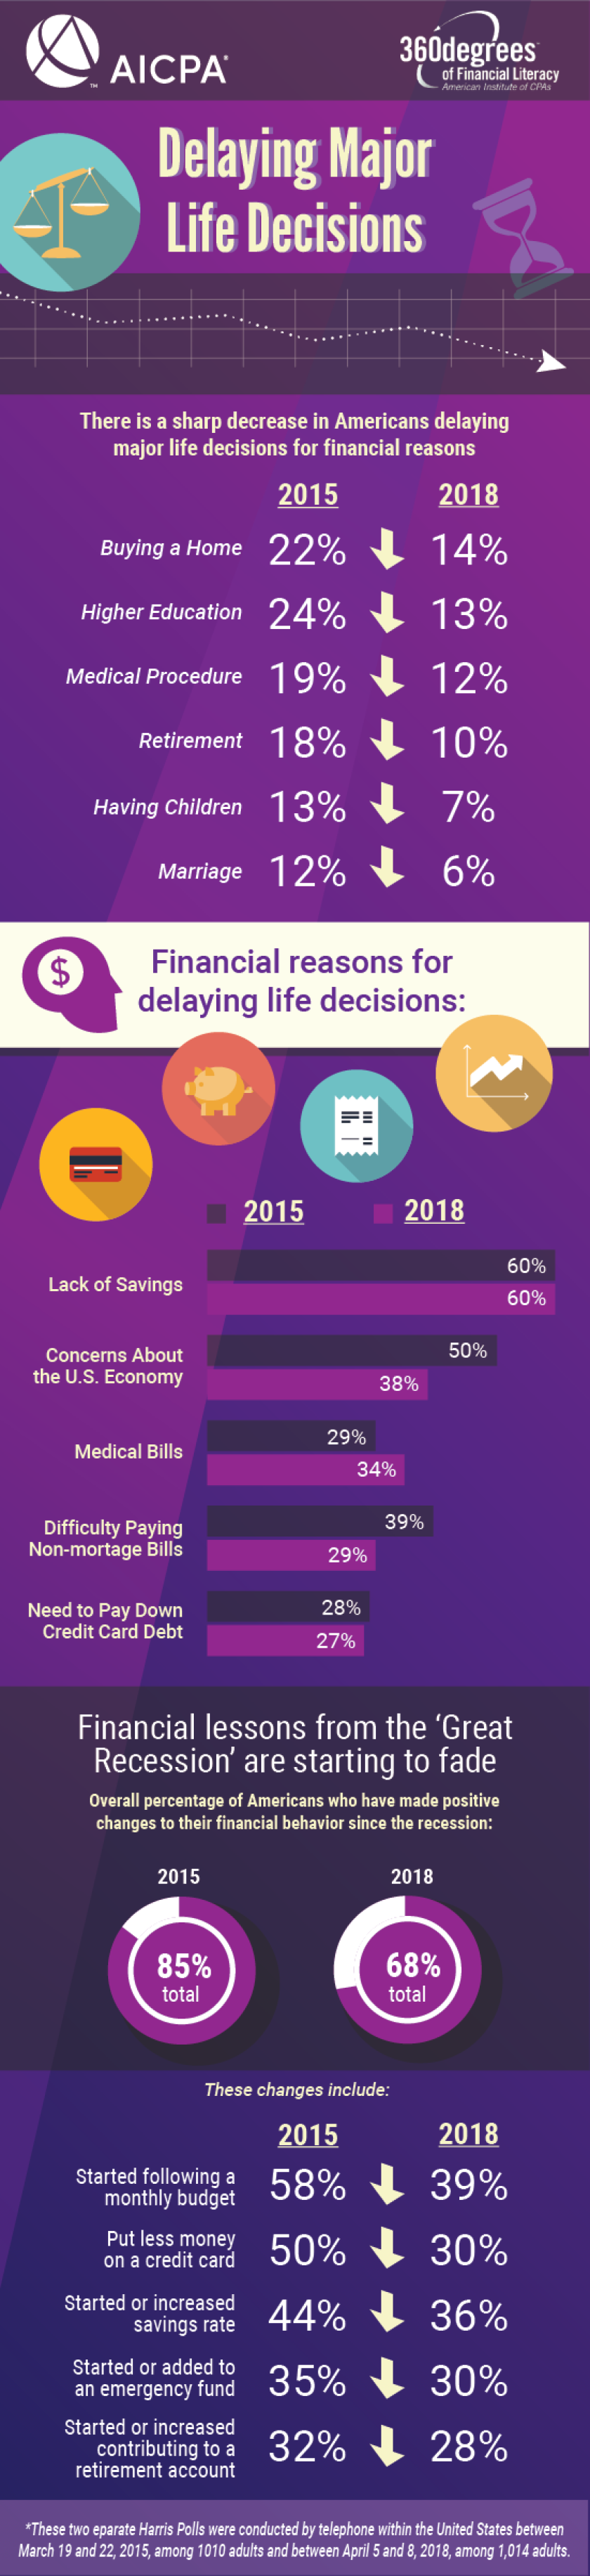 AICPA delaying major life decisions infographic